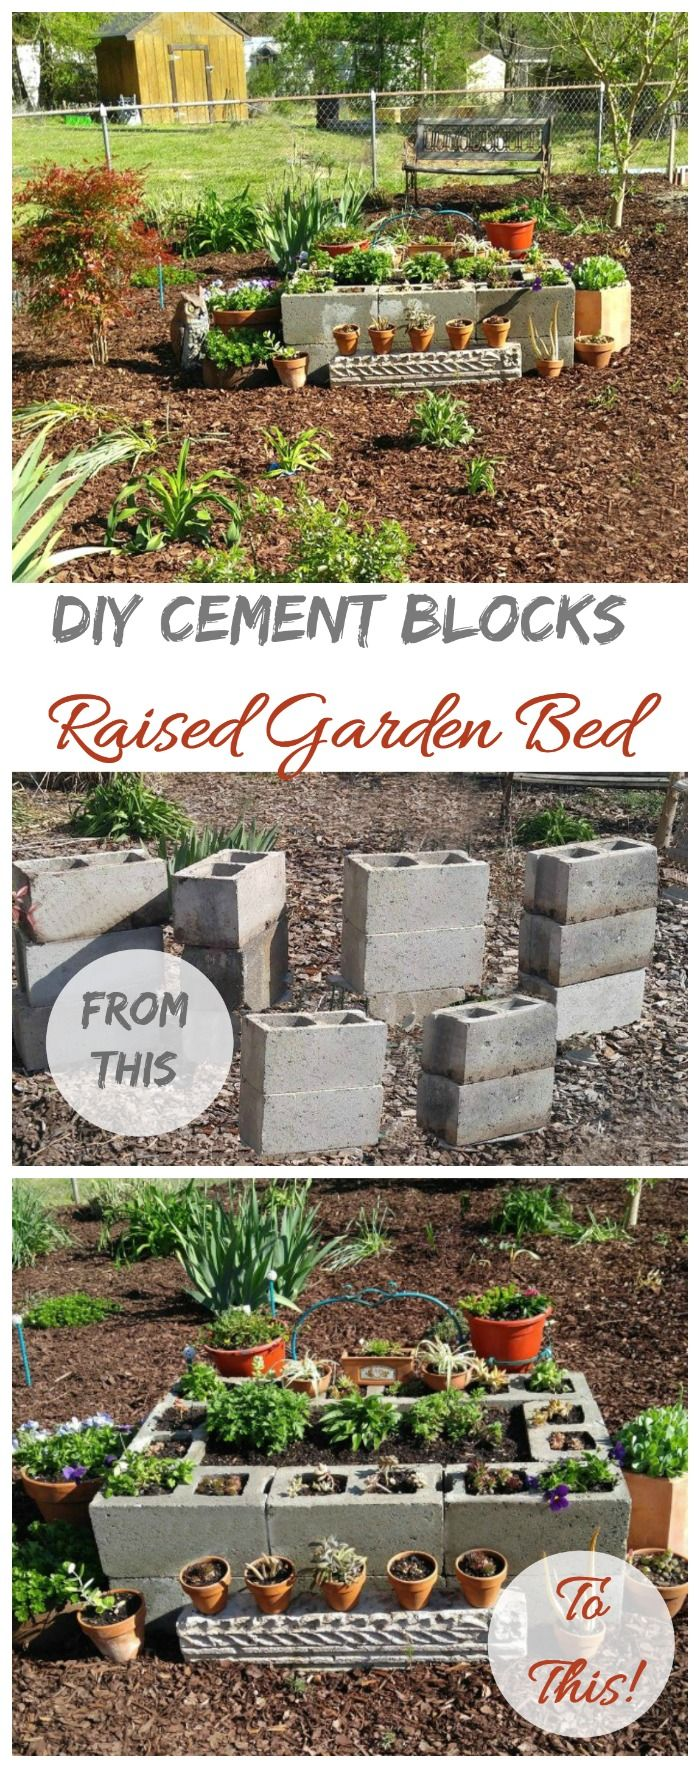 This cement block raised garden bed is simple to make and turns trash into treasure. It's perfect for growing succulents!